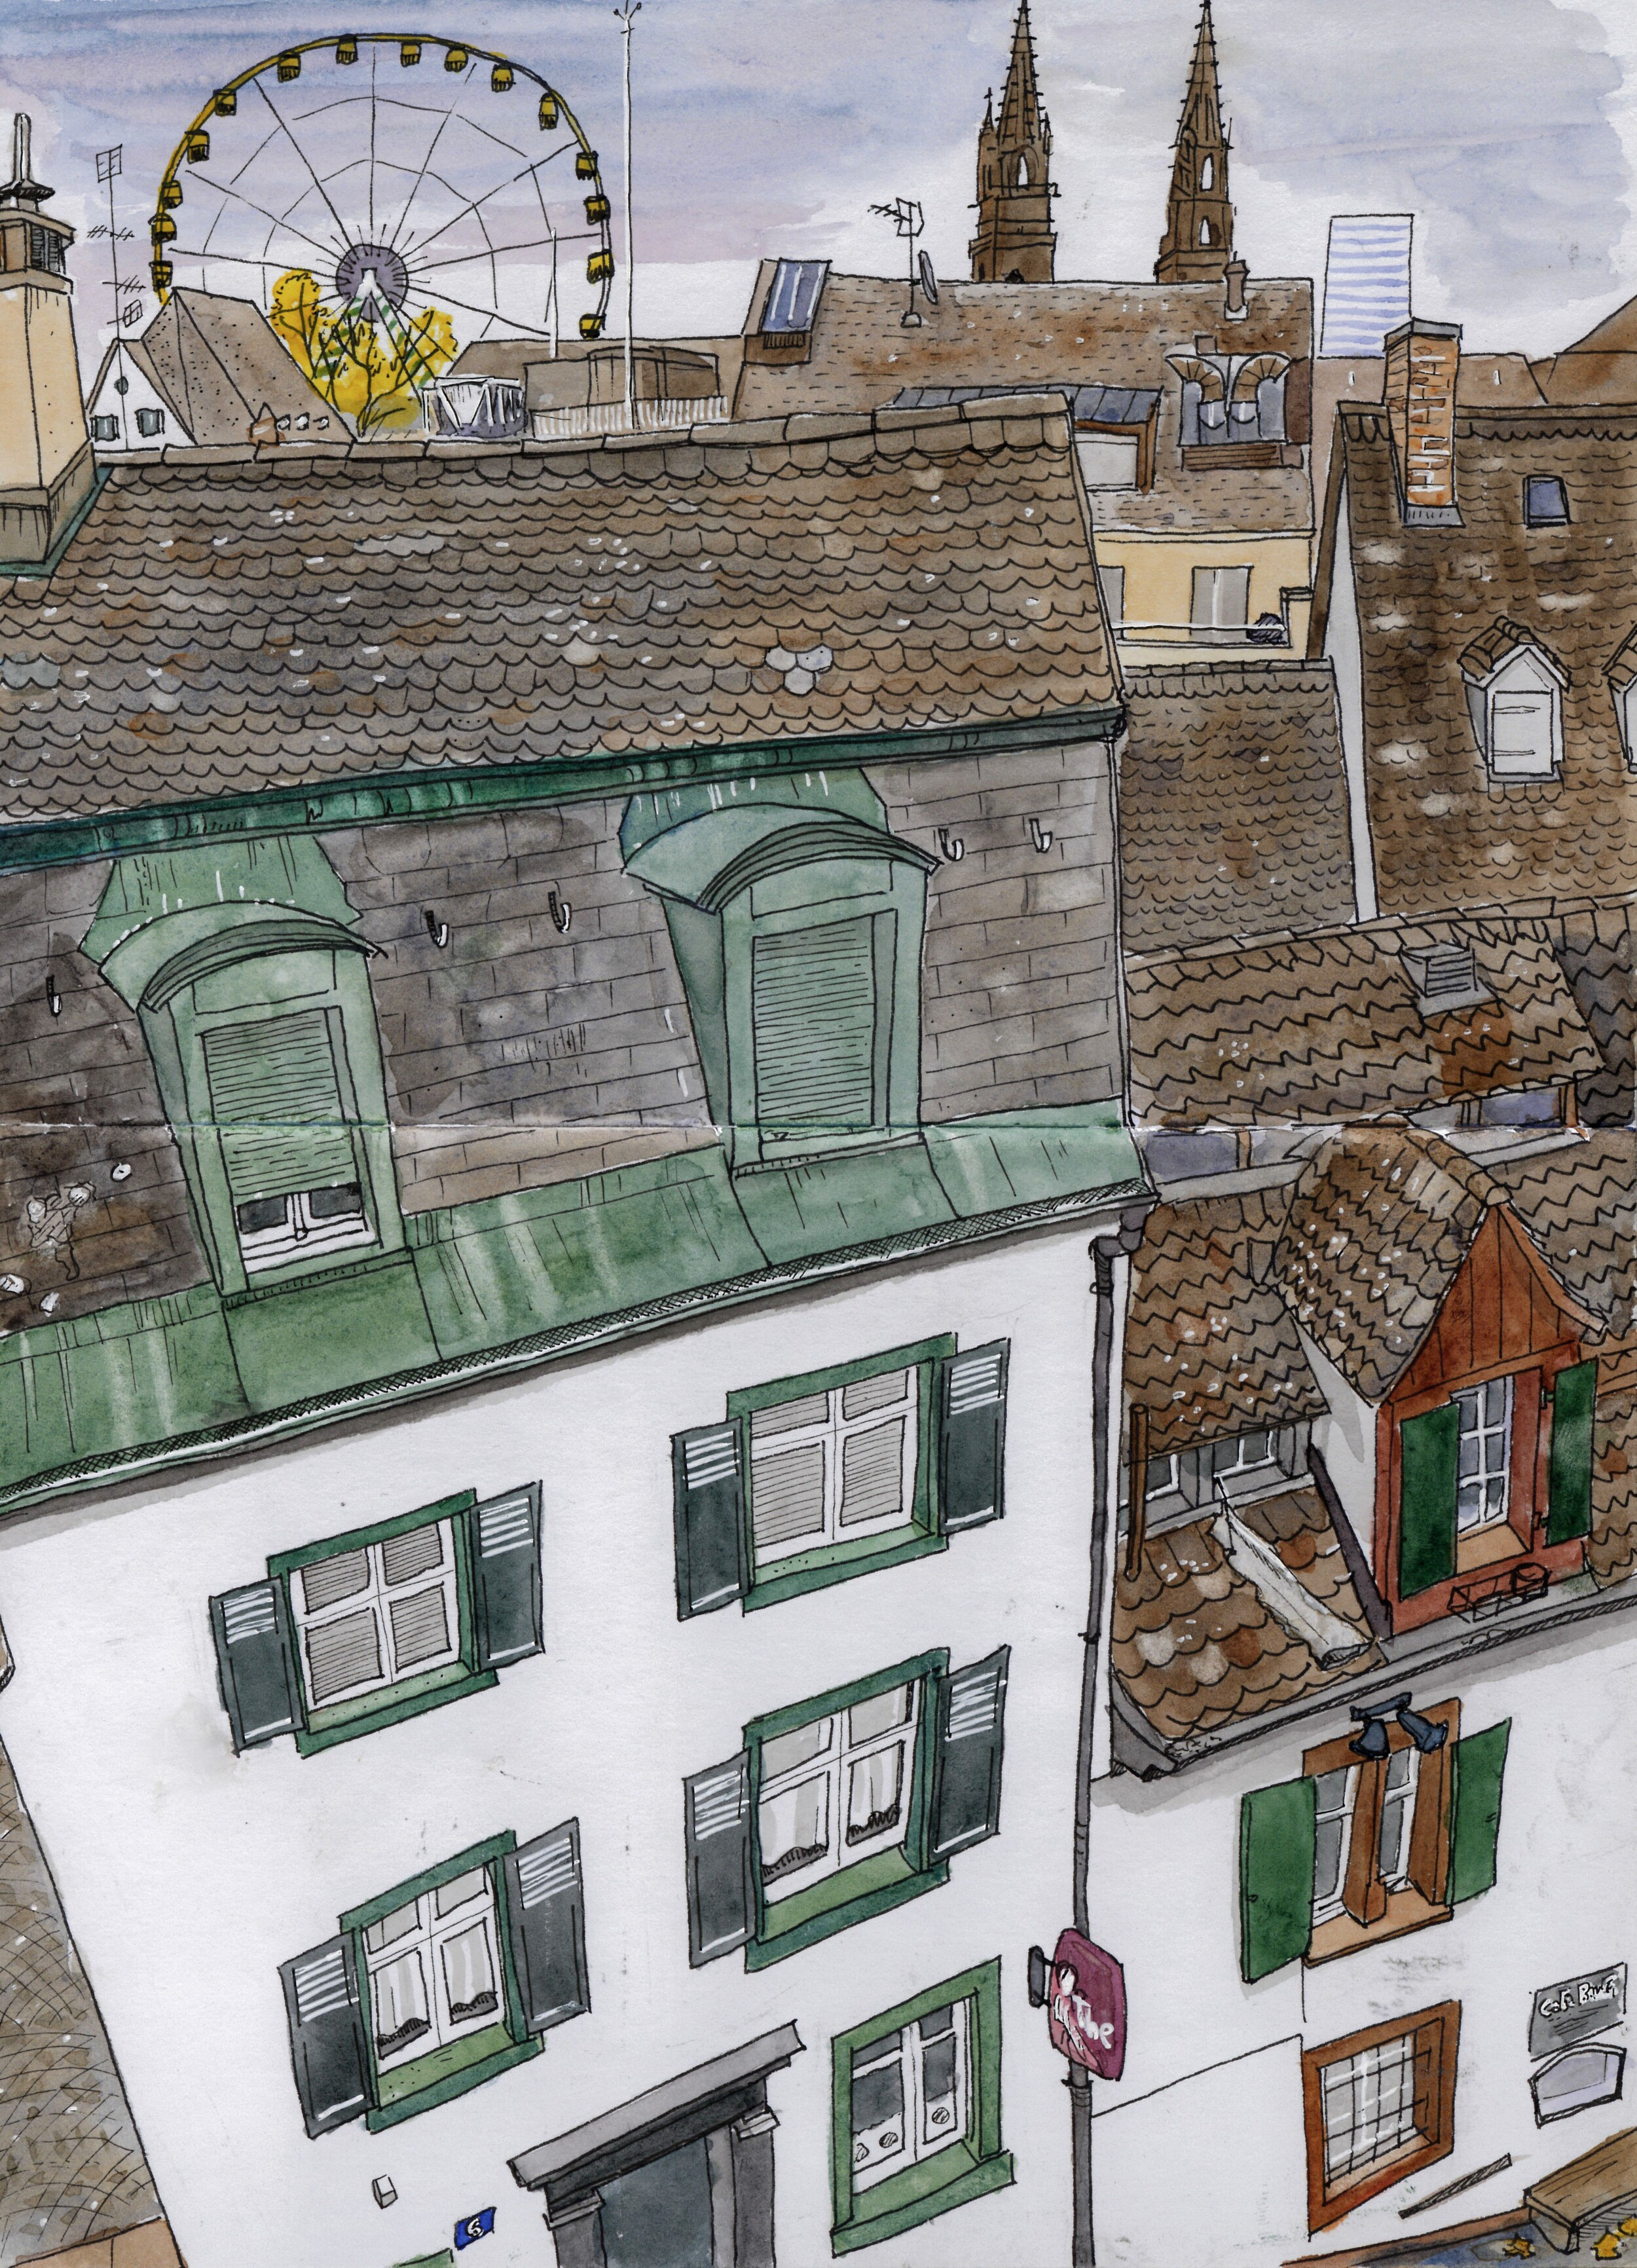 A view of the rooftops of Basel from Labyrinthplatz. I was sitting on the border of a tall wall and getting dizzy looking down.